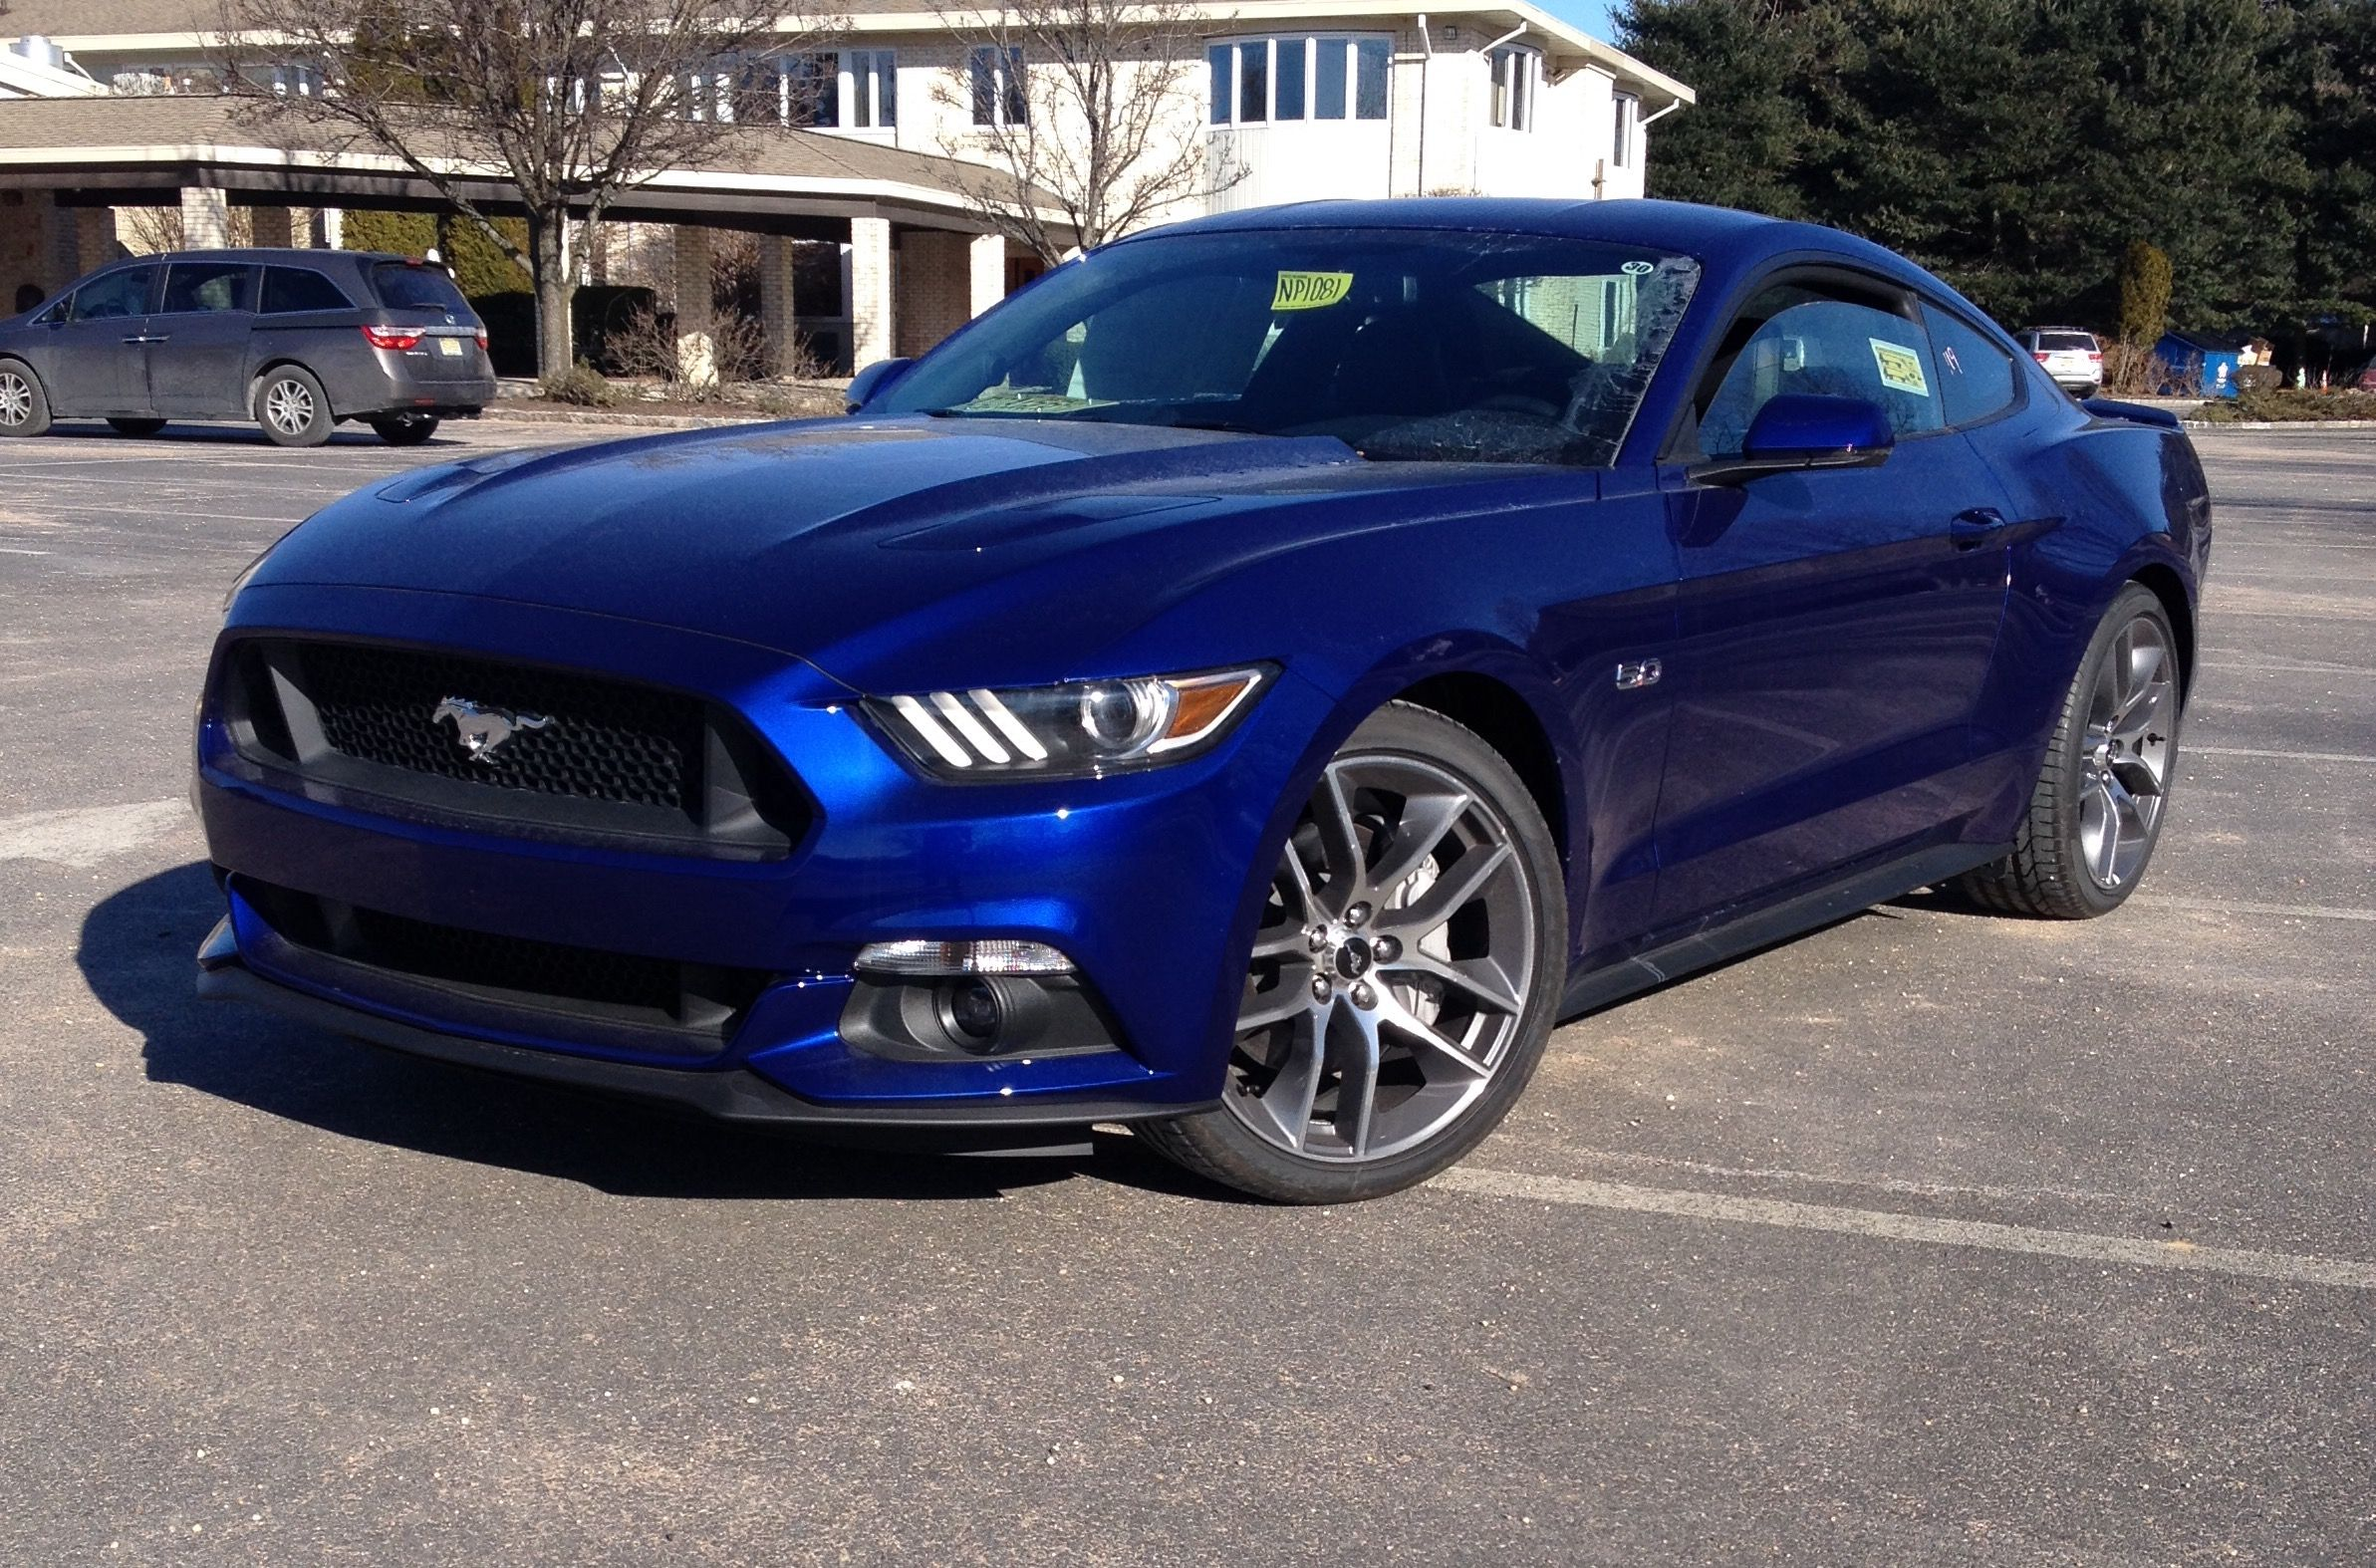 2015 Ford Mustang Gt Review Blue Mustang 2015 Ford Mustang Ford Mustang